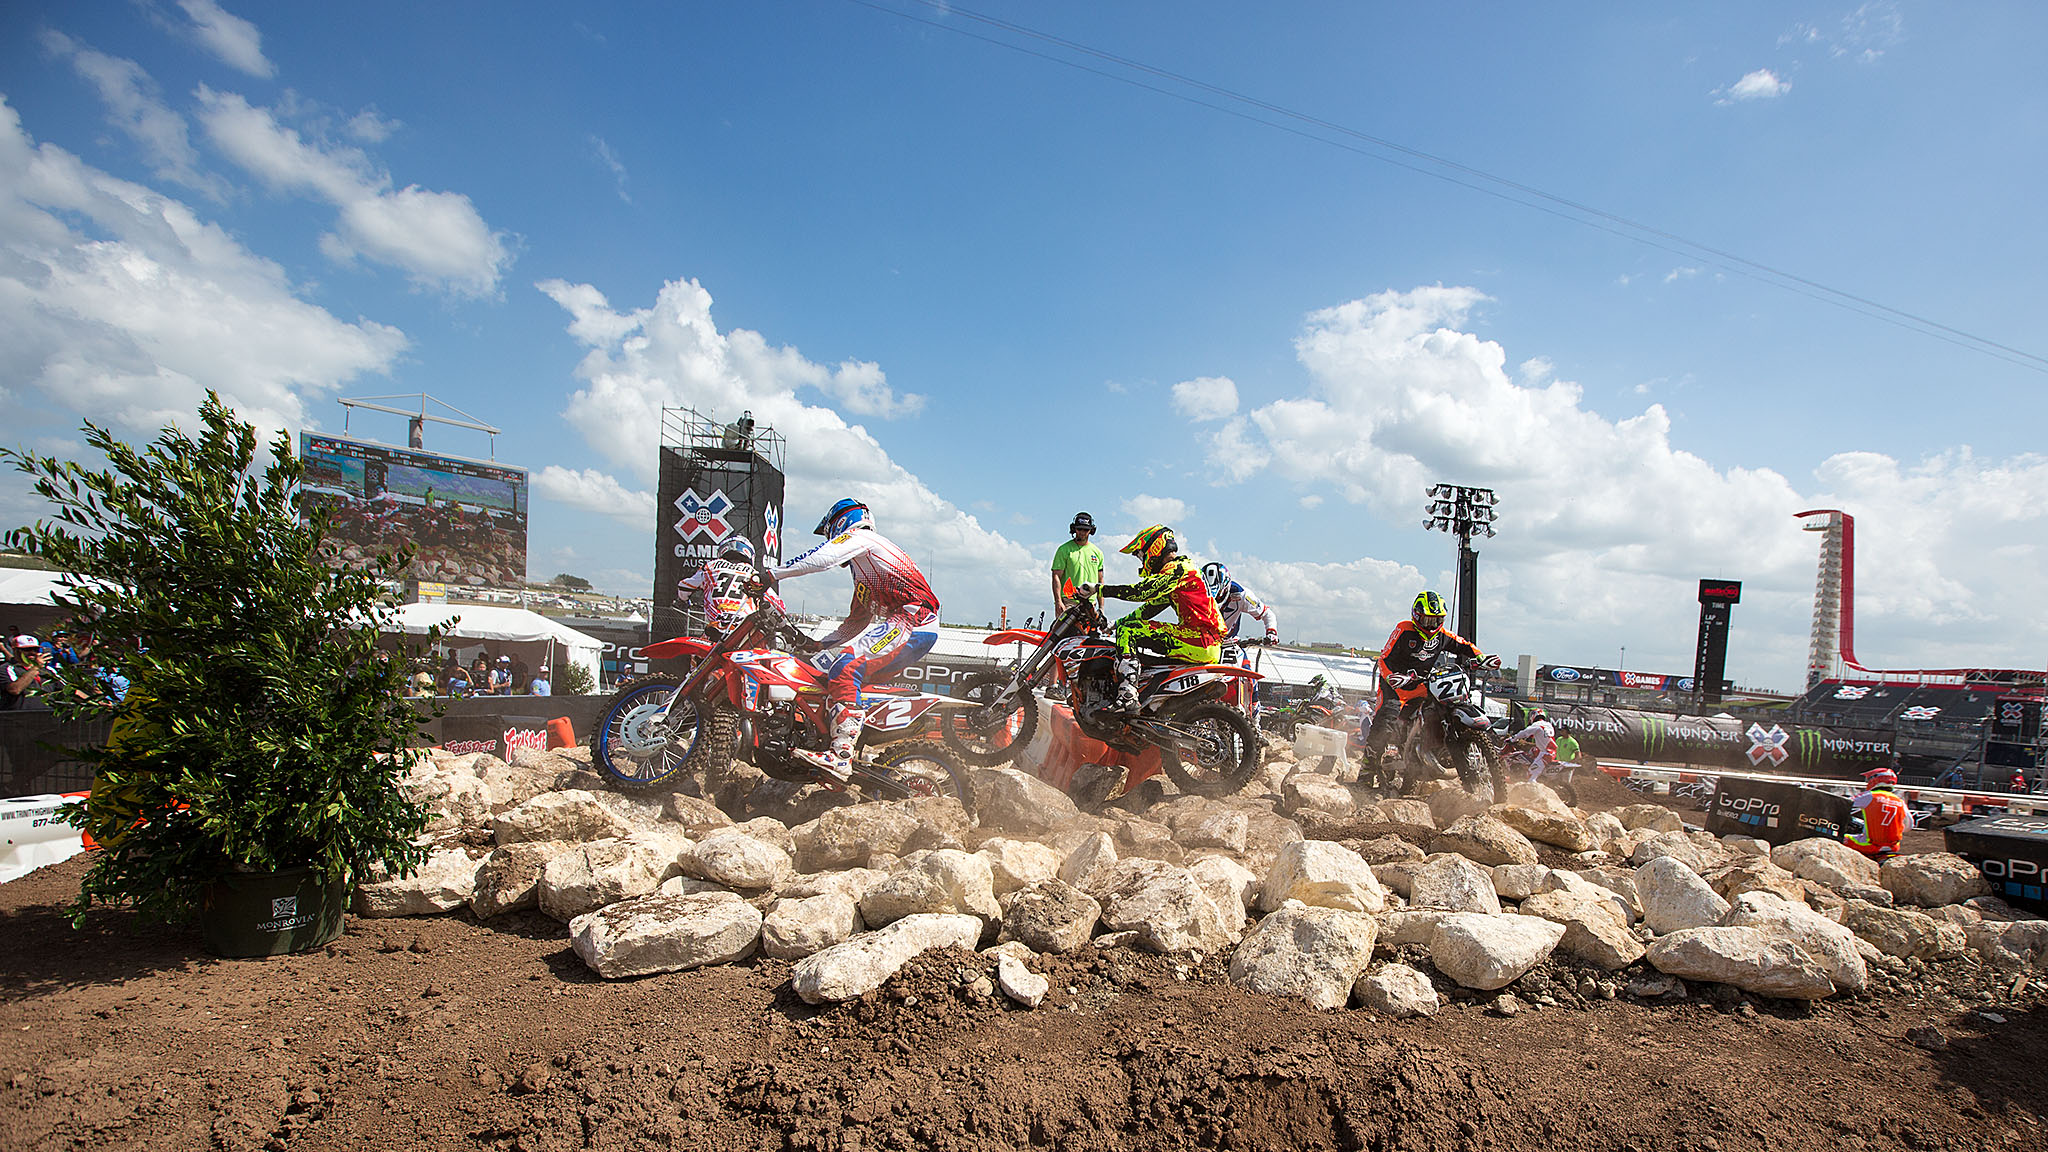 On Friday afternoon, Enduro X athletes battled a challenging course -- and the Texas sun -- for a chance at X Games glory in the first day of competition at Circuit of the Americas.